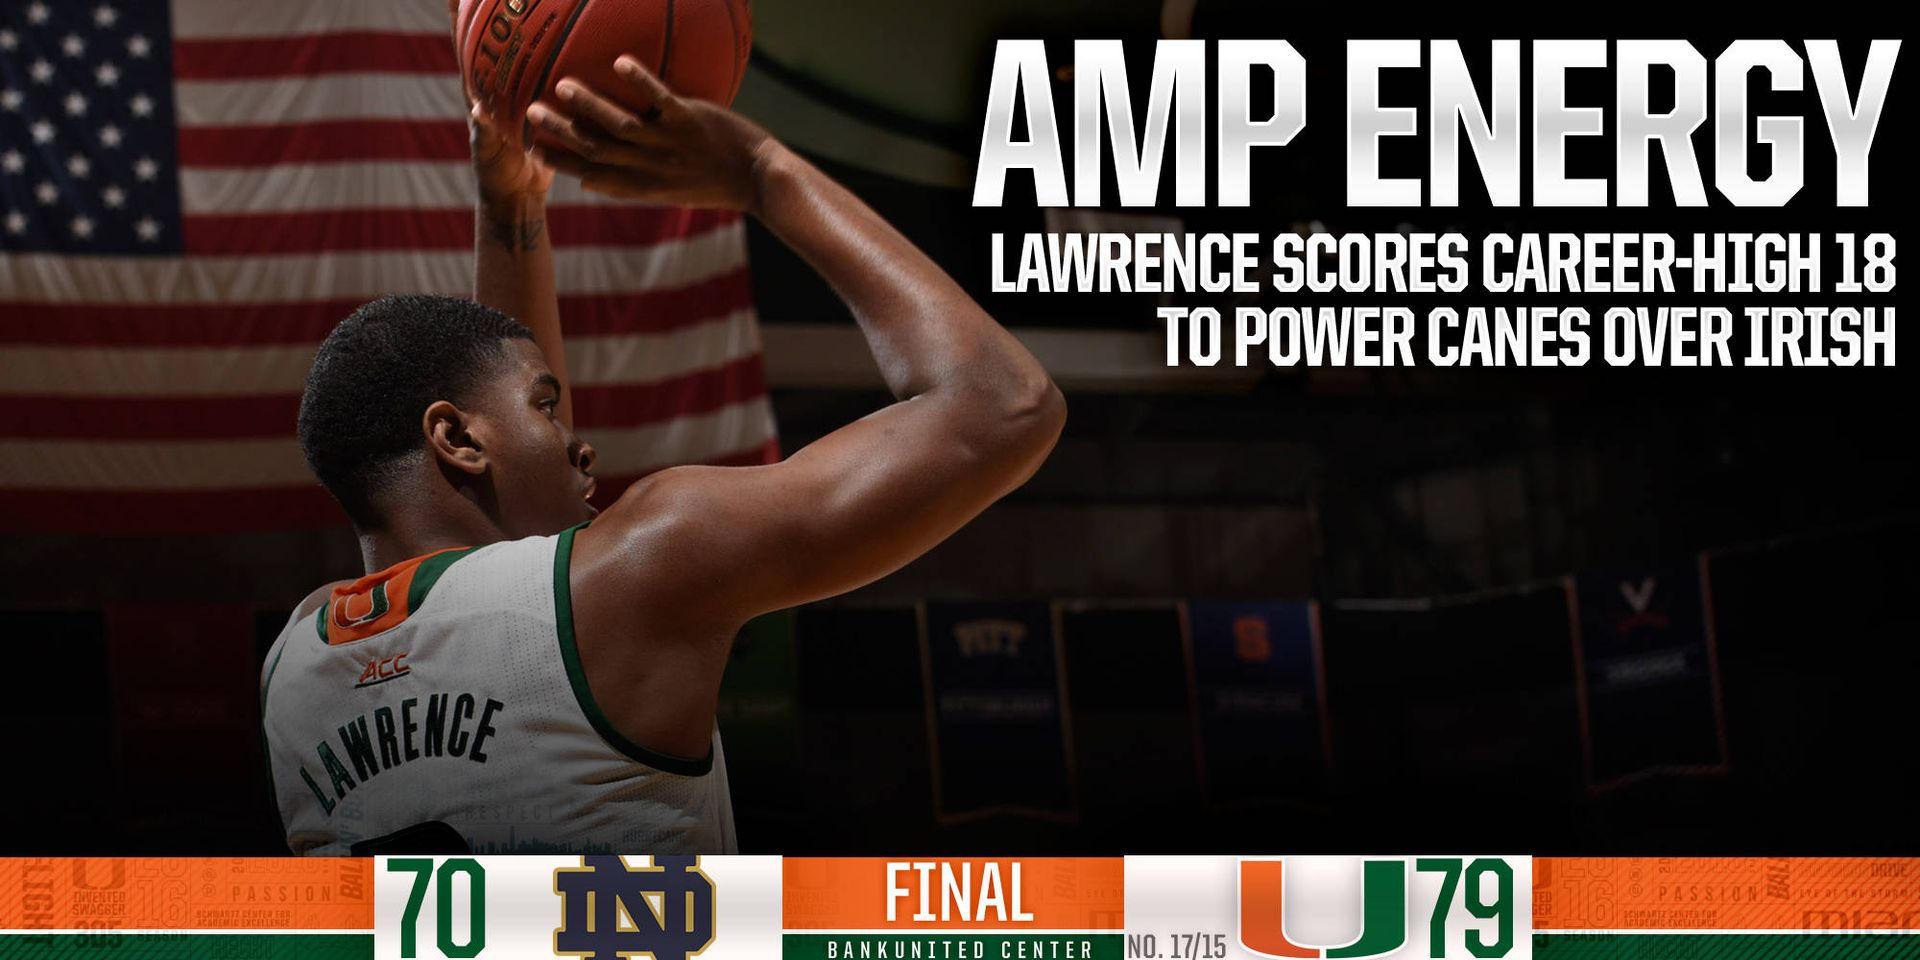 Amp Energy: Lawence Powers Canes to 79-70 Win